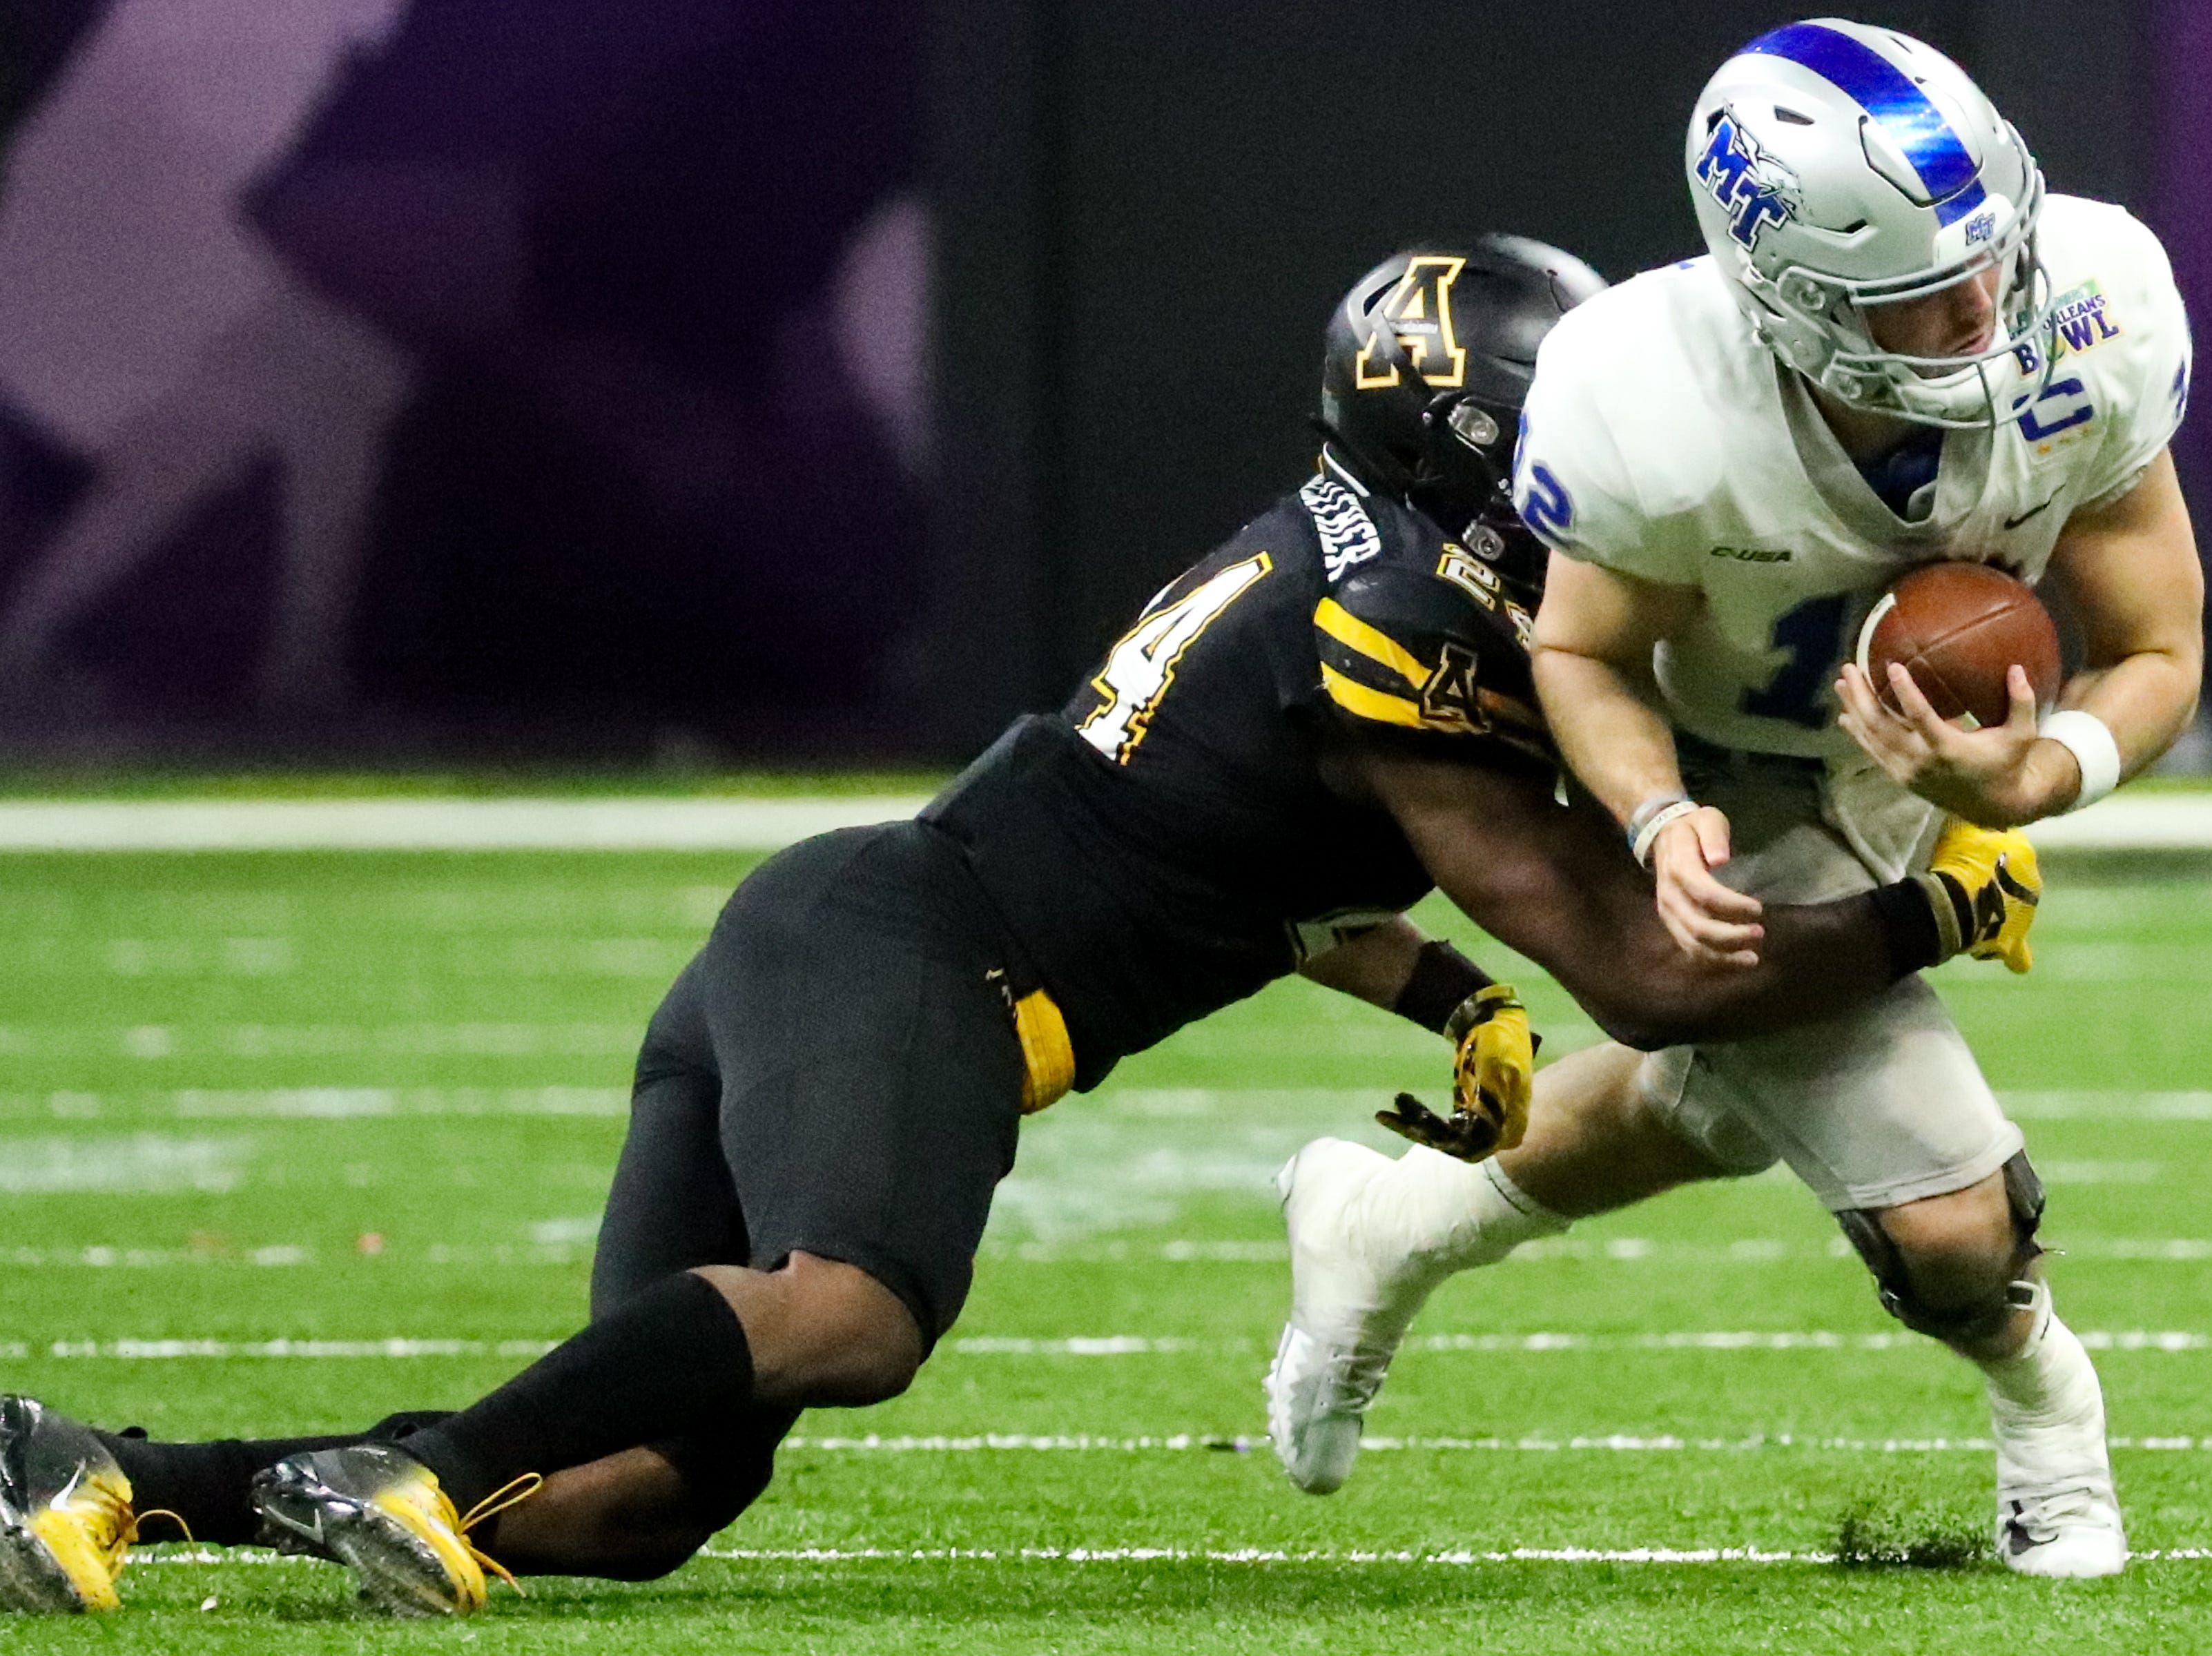 Middle Tennessee Blue Raiders quarterback Brent Stockstill (12) is tackled by Appalachian State Mountaineers linebacker Akeem Davis-Gaither (24) during the first half at the Mercedes-Benz Superdome Saturday, Dec. 15, 2018, in New Orleans, La.